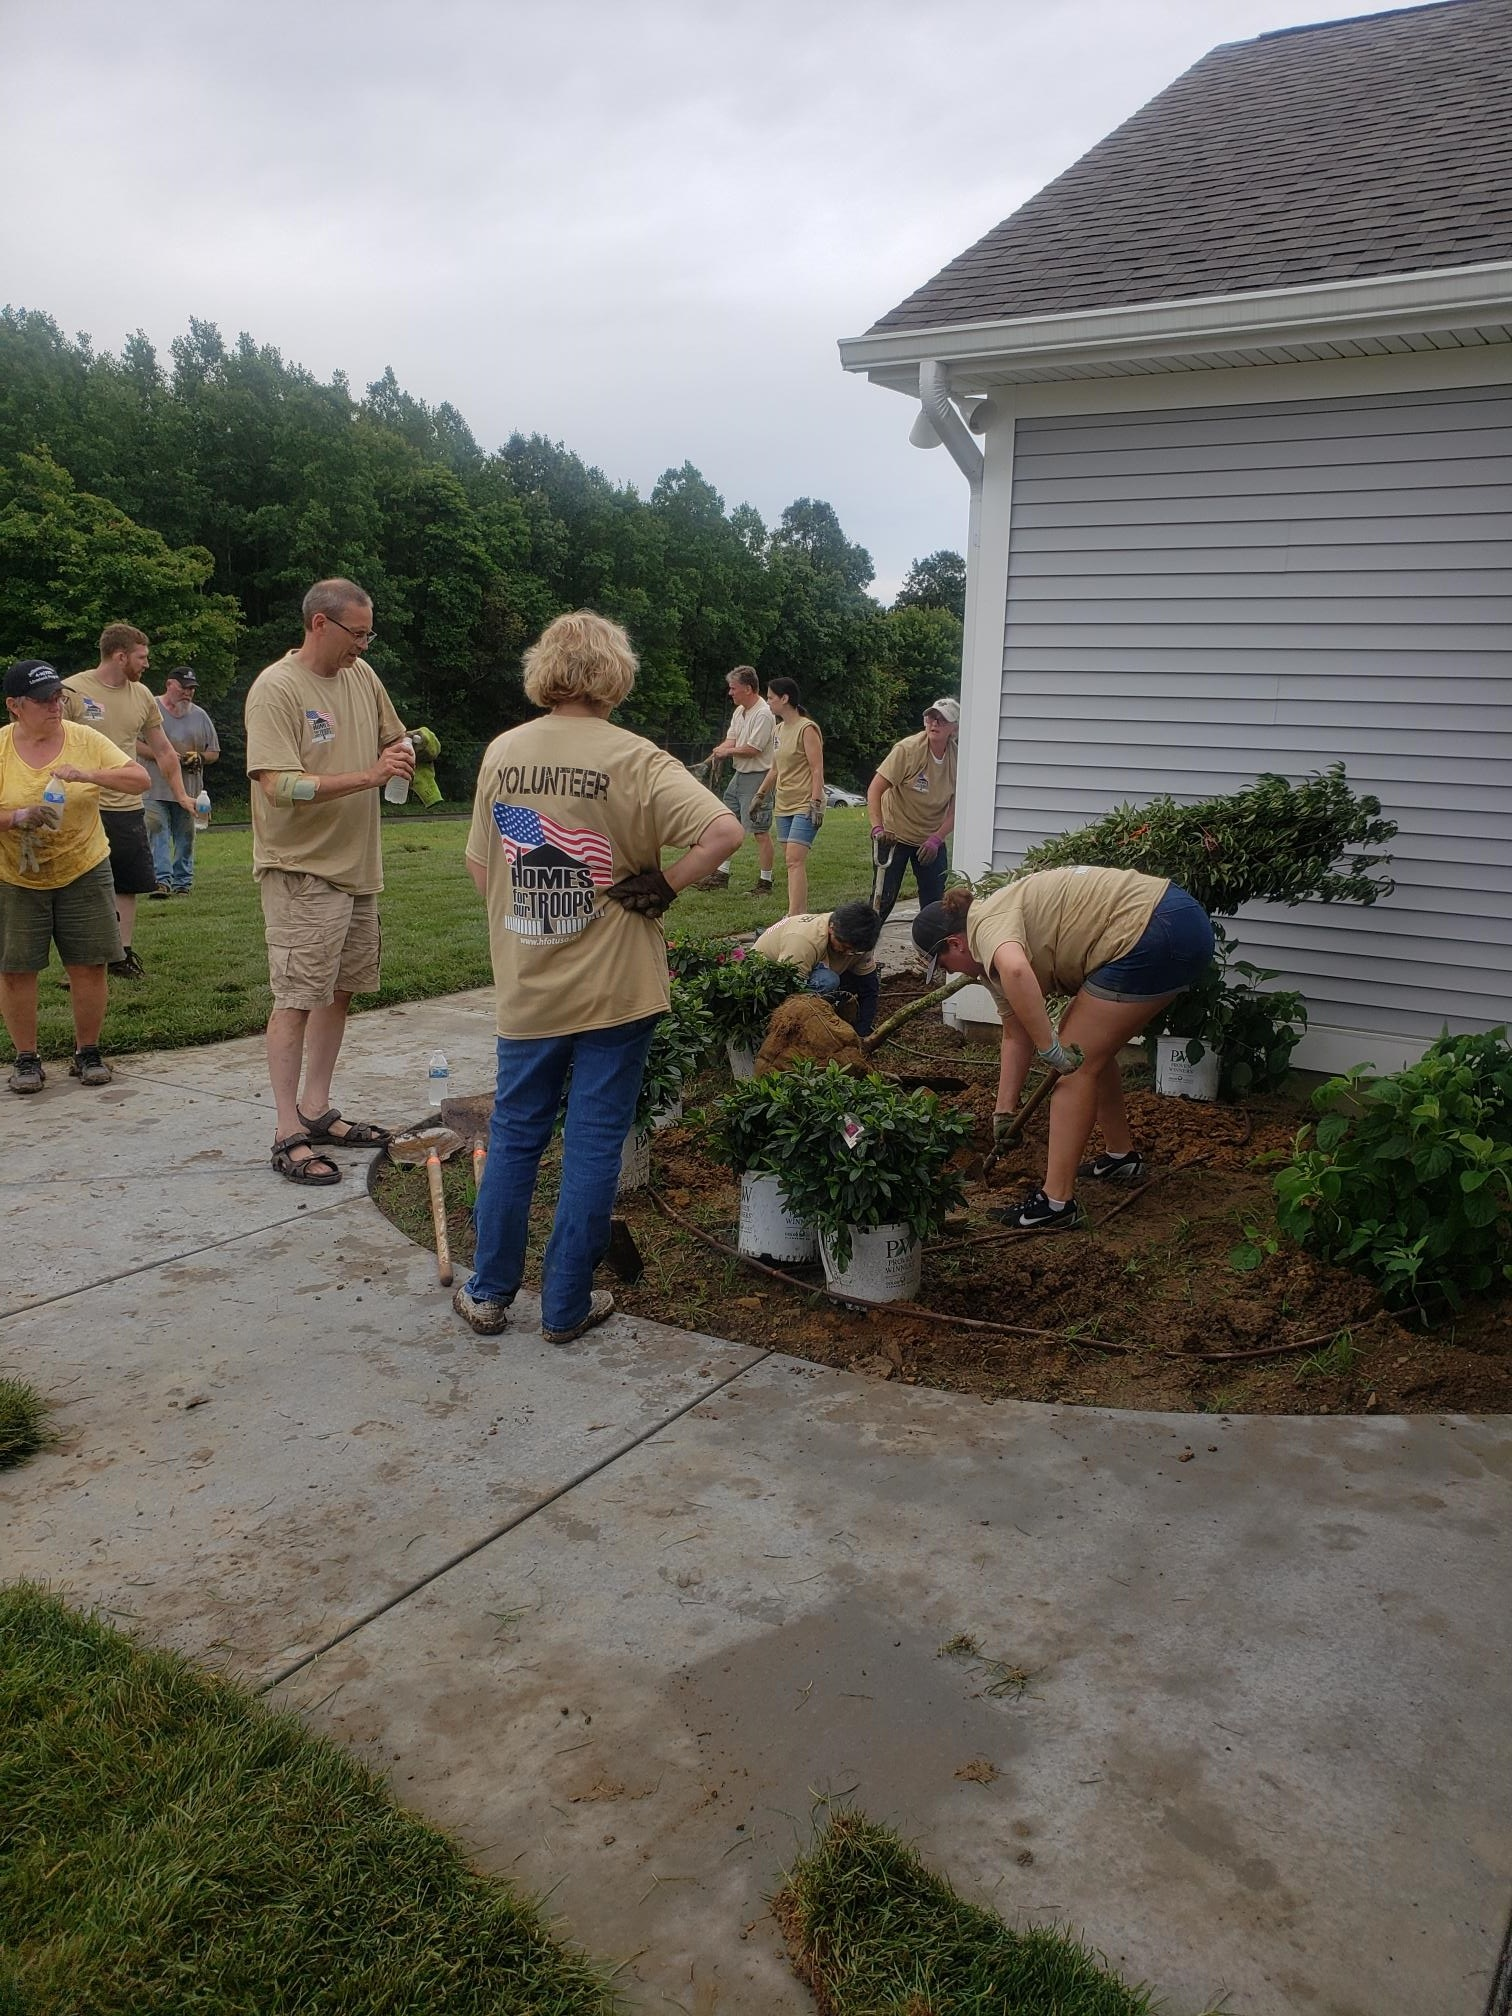 Pittsburgh Post Volunteer Day - Homes For Our Troops